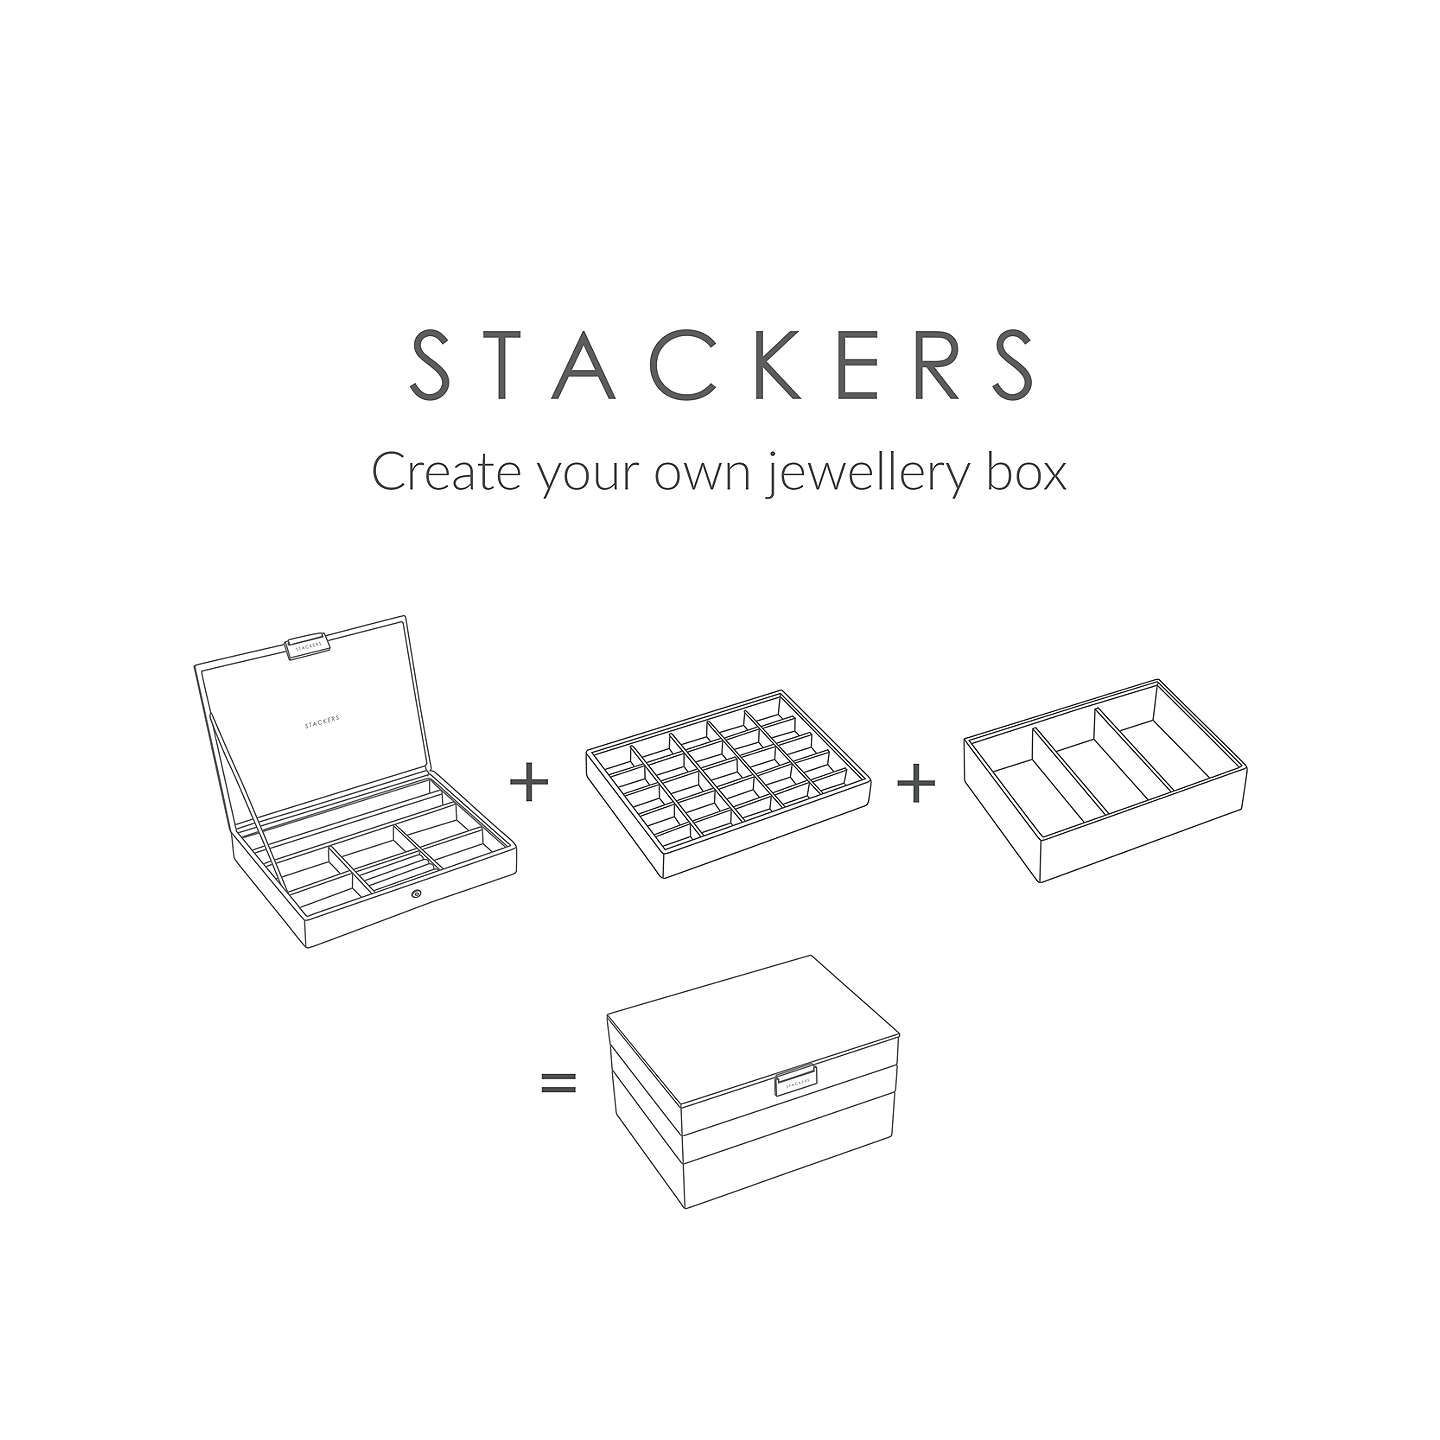 BuyStackers Jewellery 25-section Tray, Mink Online at johnlewis.com